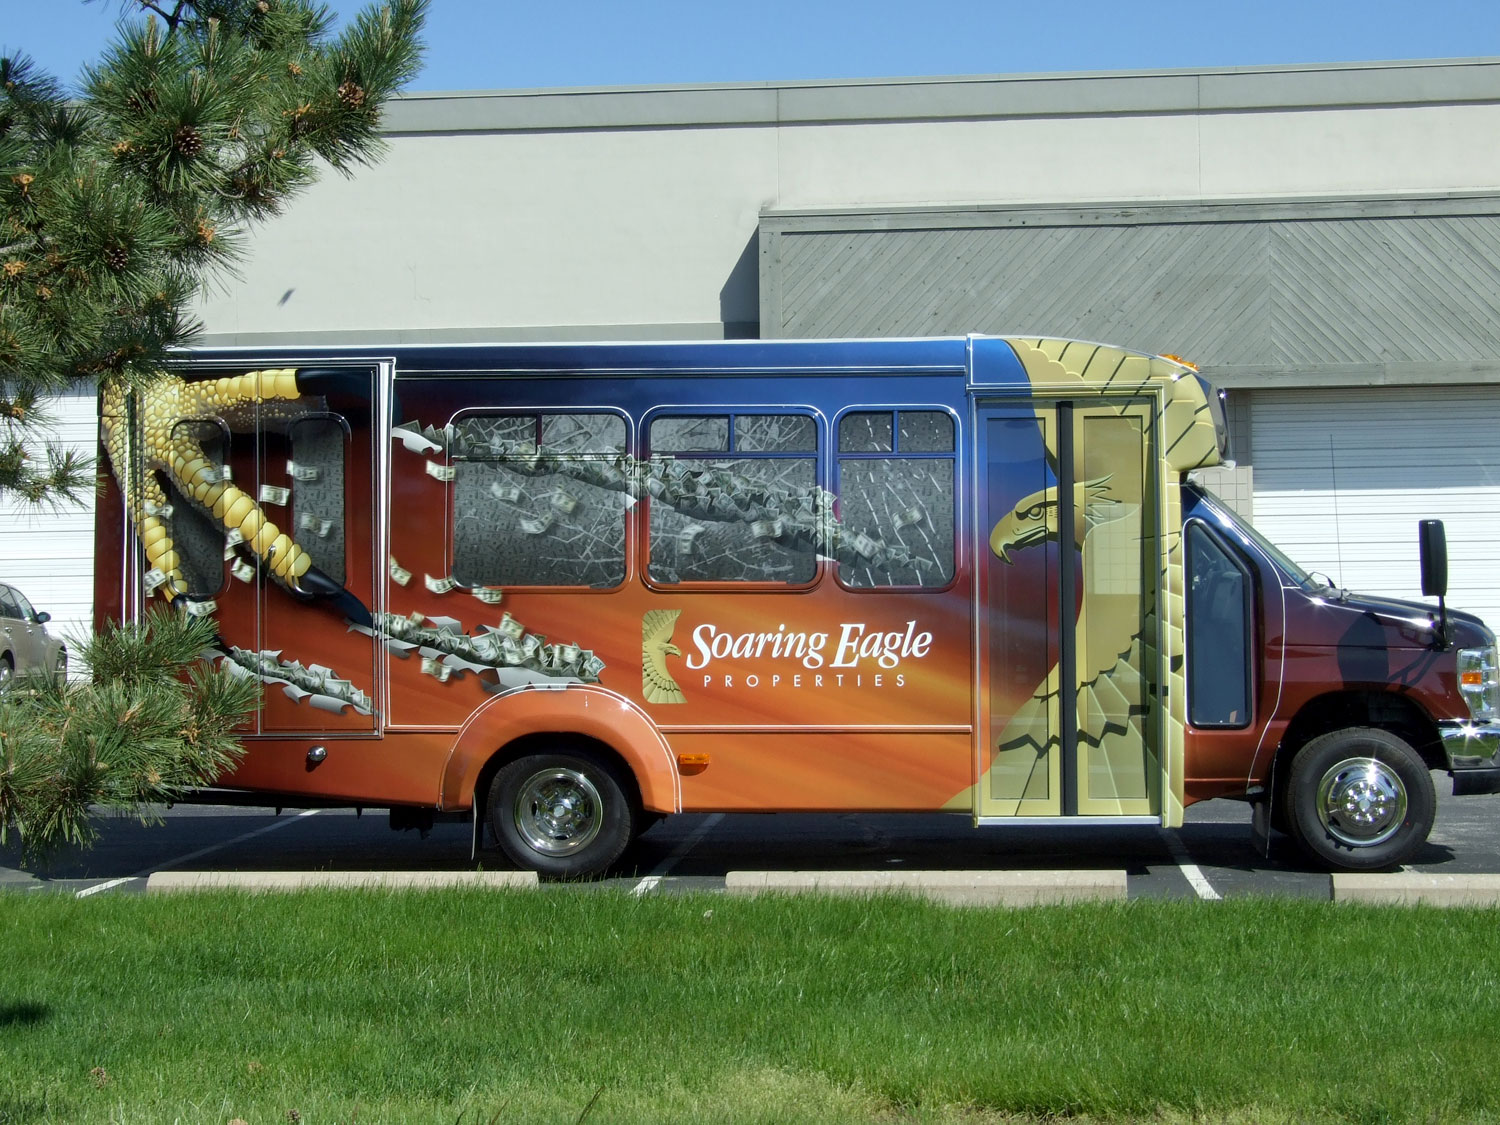 Soaring Eagle Properties Bus Graphics